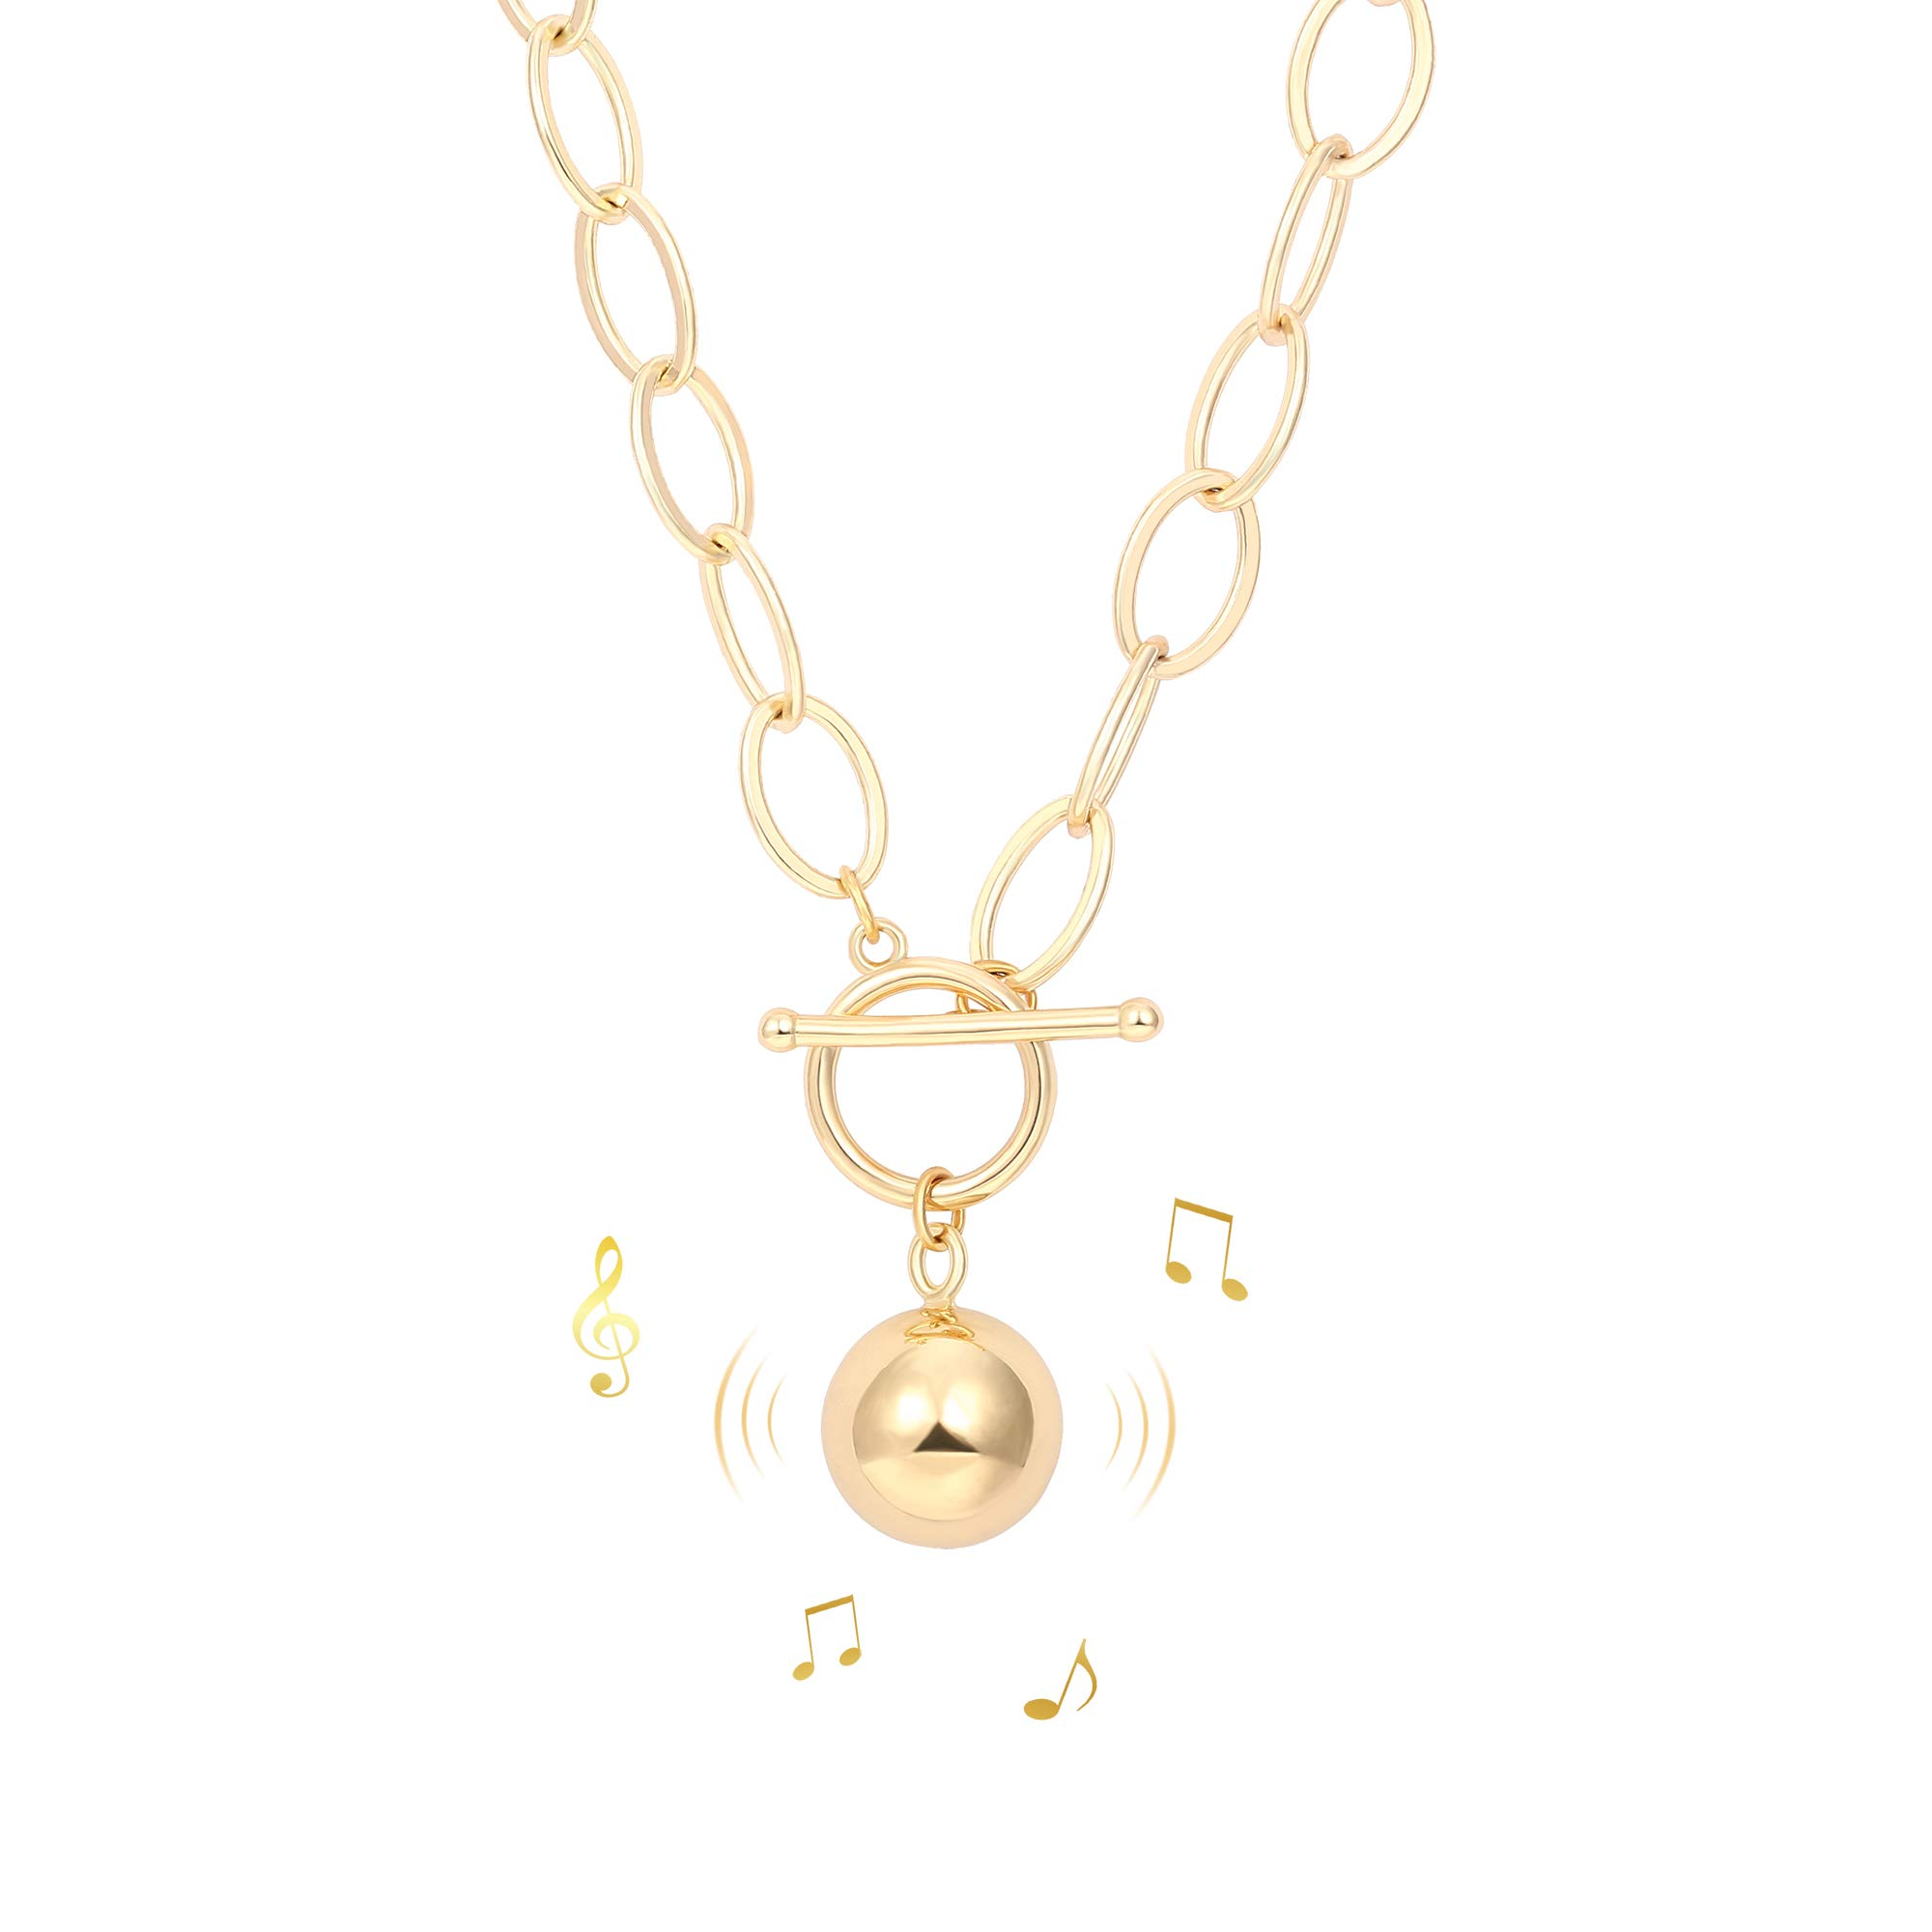 Evil Eye Necklace 18k Gold Plated Medal with 20 inch Chain Evil Eye Charm Pendant with 20 inch Chain